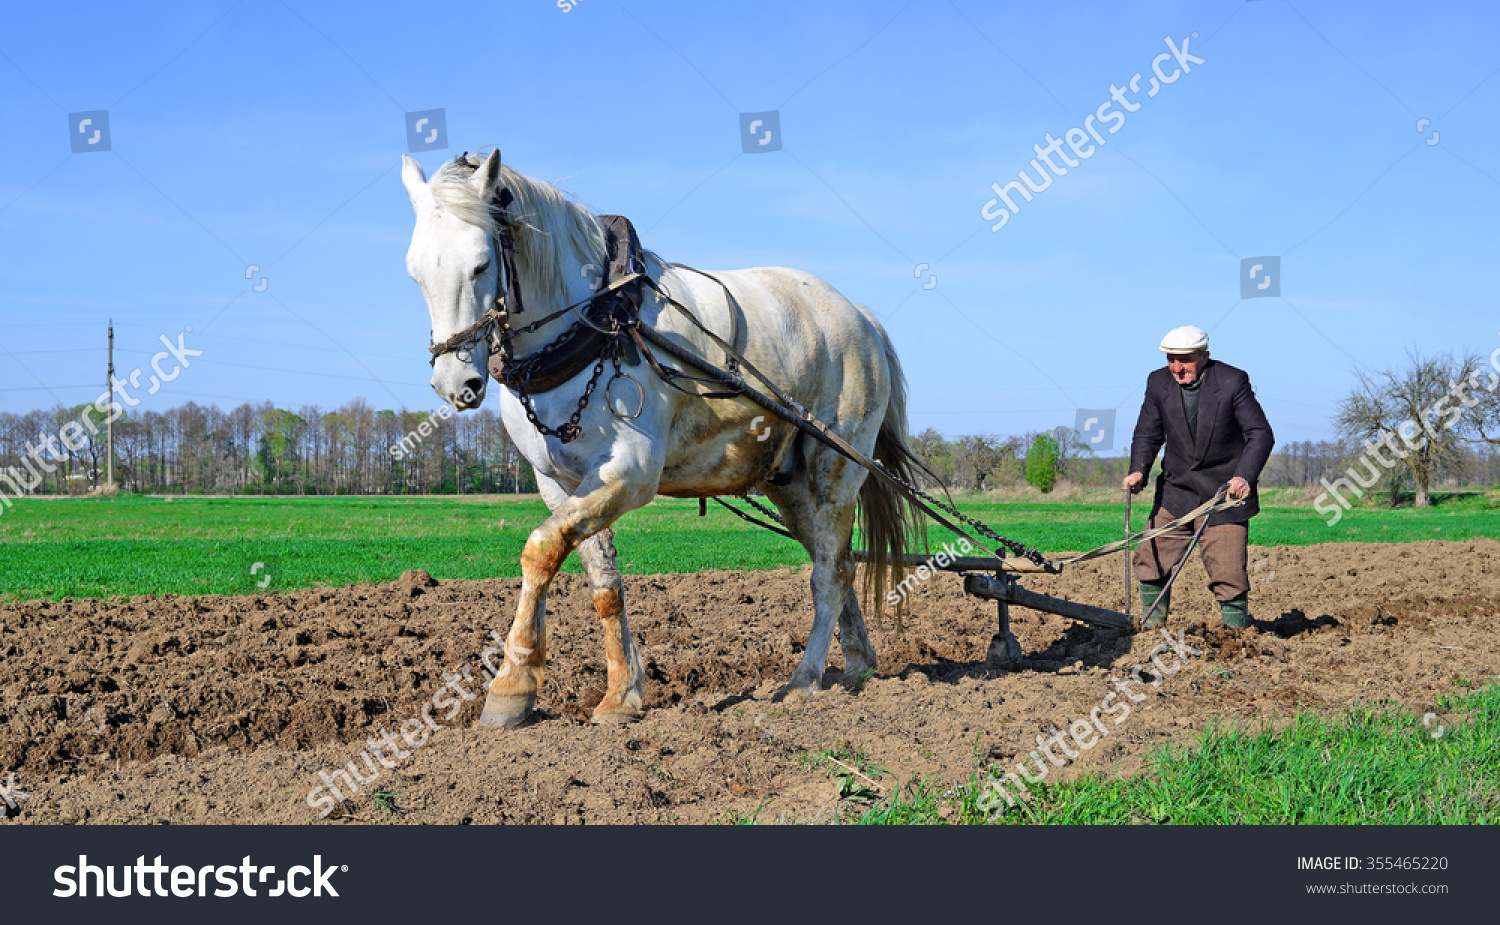 Kalush, Ukraine â?? April 23: Fallowing of a spring field by a